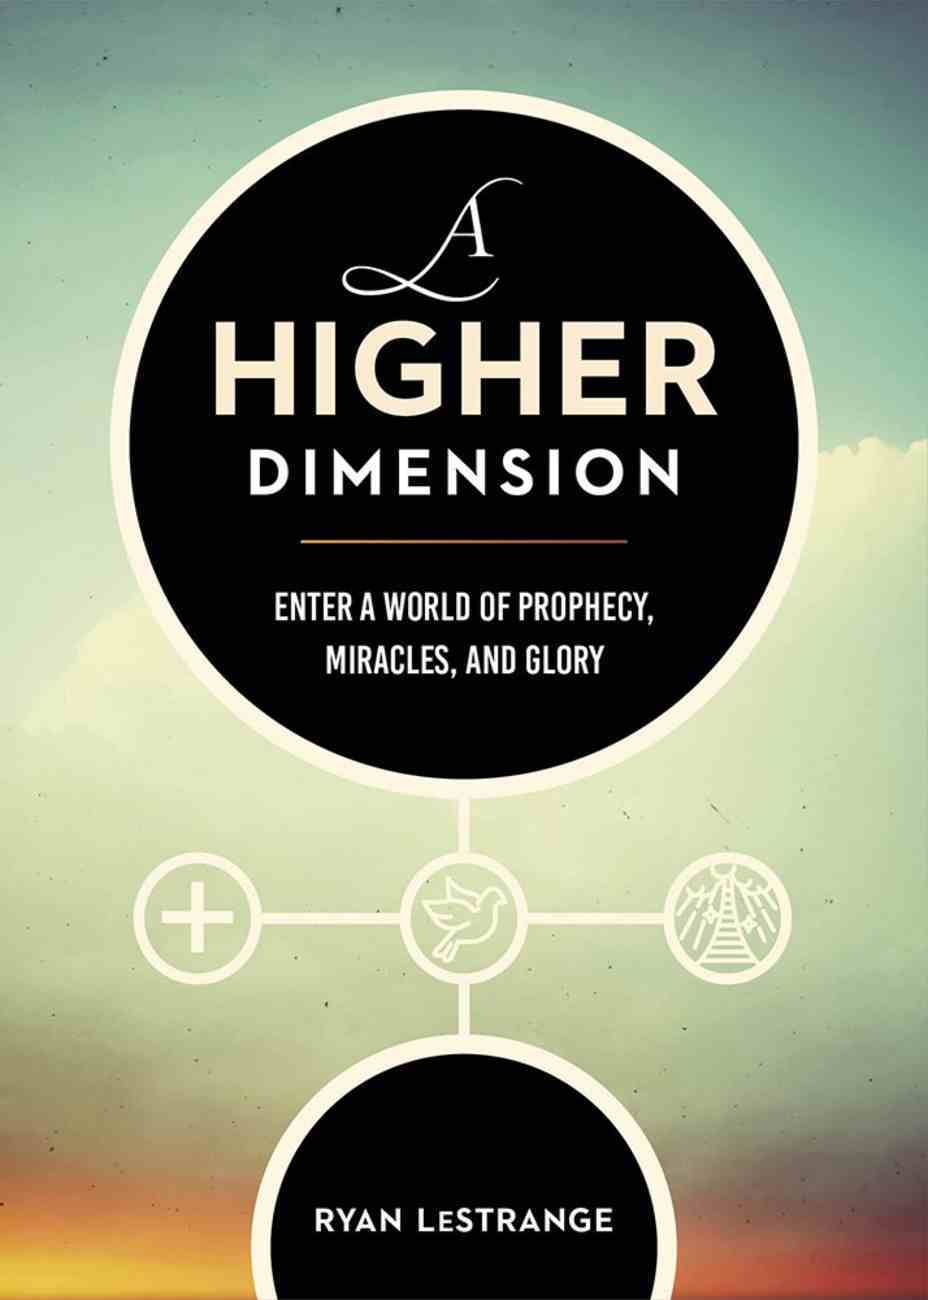 A Higher Dimension: Enter a World of Prophecy, Miracles, and Glory Paperback